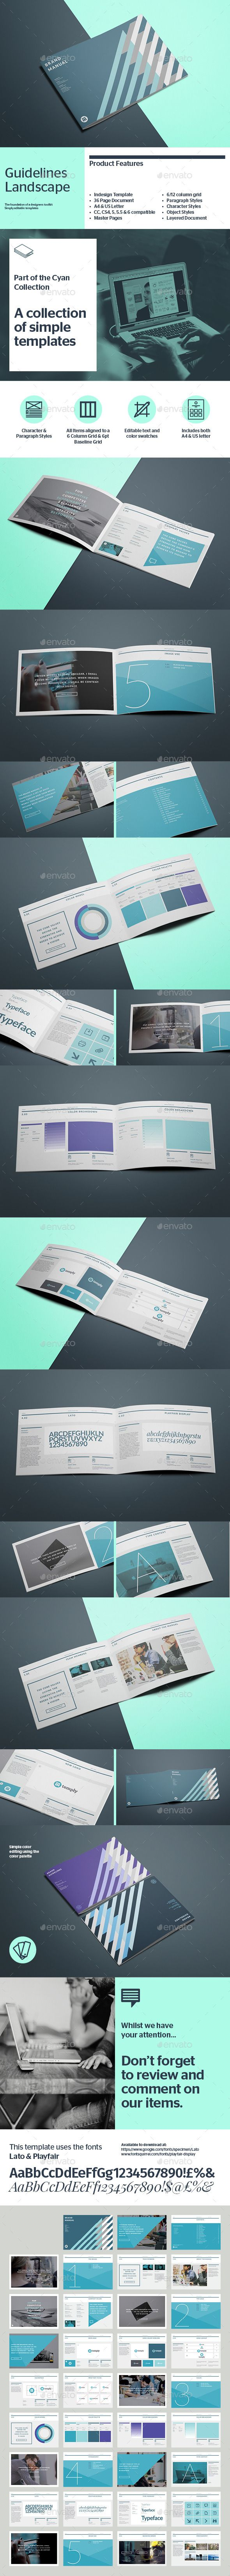 Brand Manual Horizontal - Informational Brochures